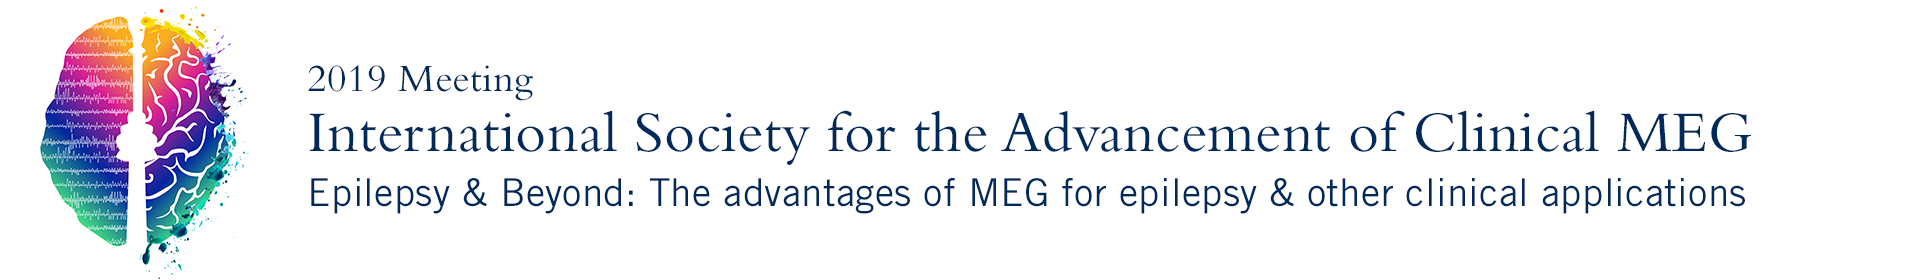 The Meeting of the International Society for the Advancement of Clinical MEG Event Banner